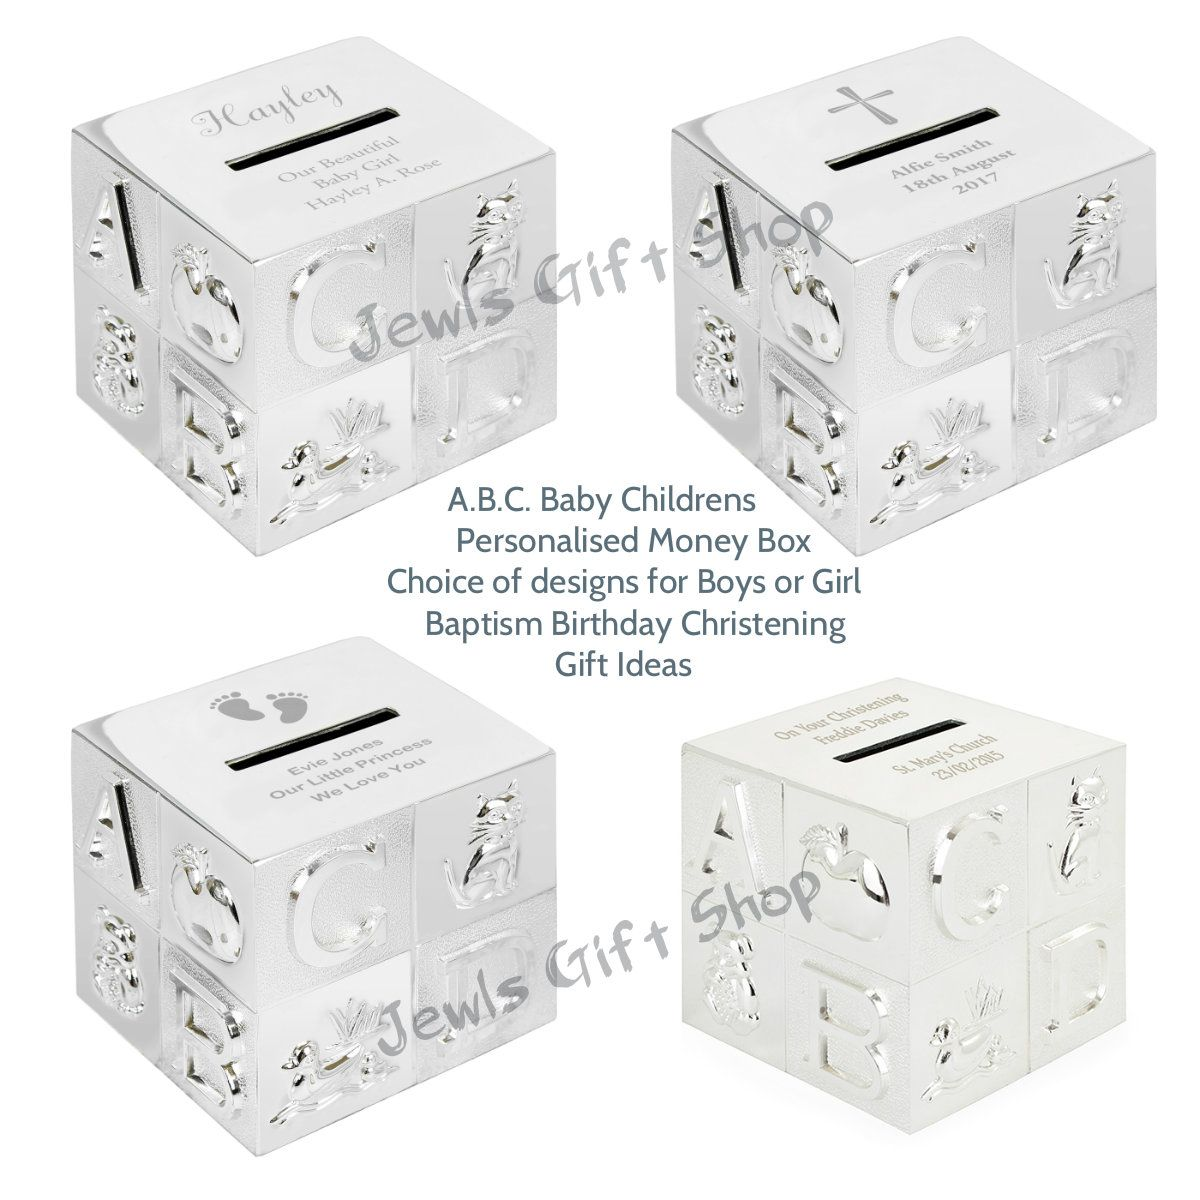 Baby childs ABC Money box personalised choice of designs christening birthday baptism gifts: